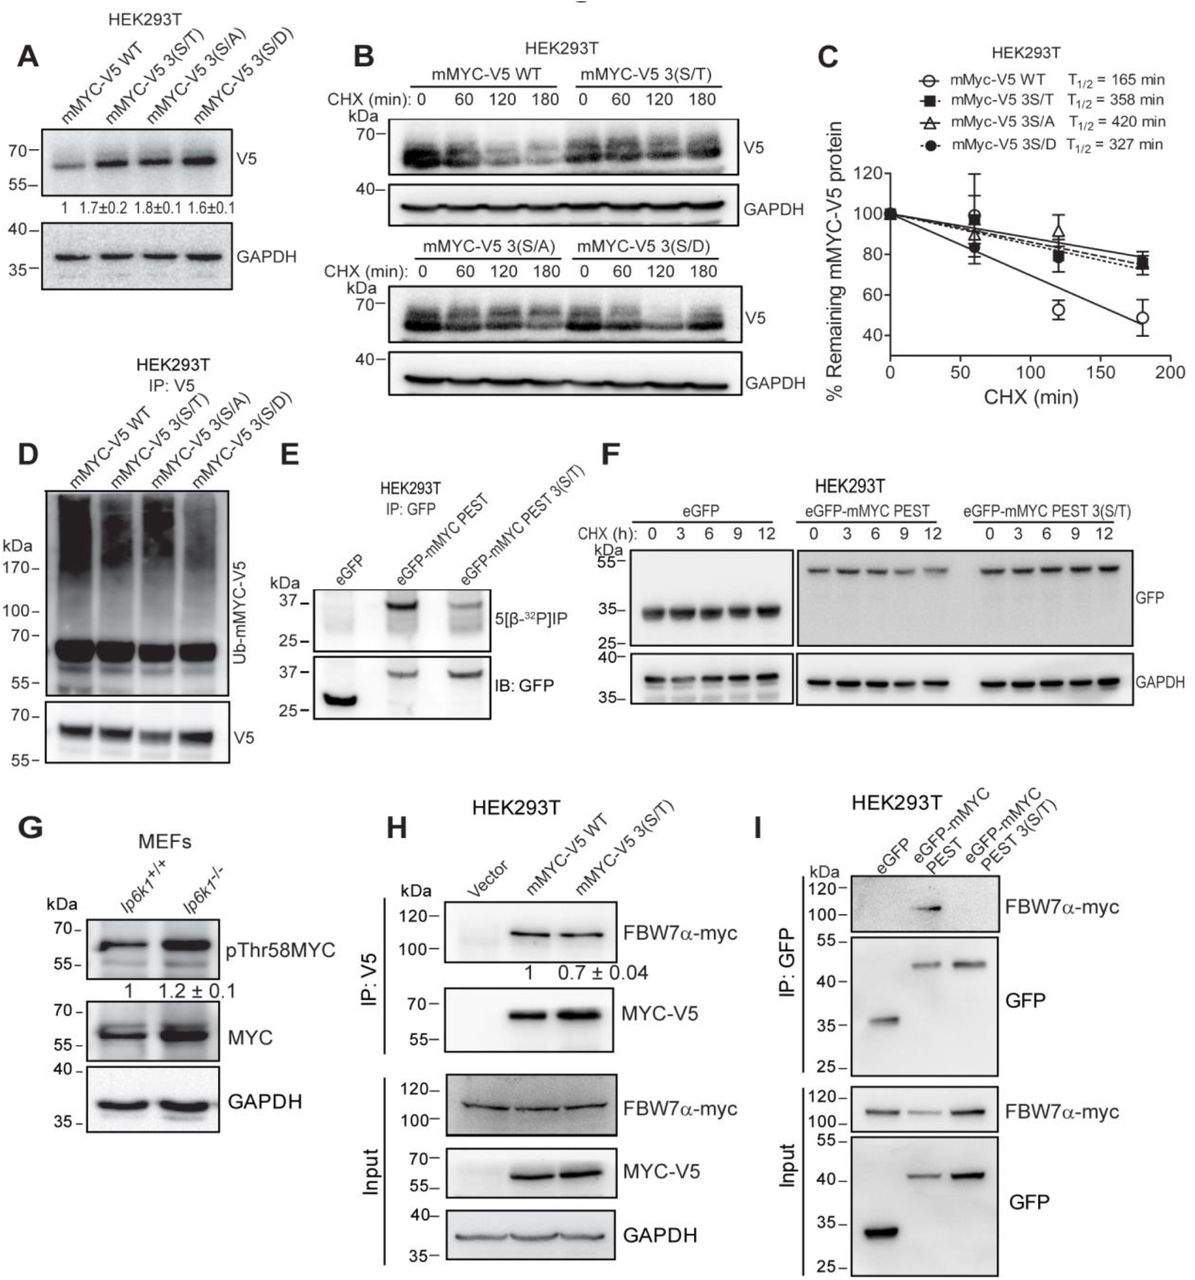 PEST domain pyrophosphorylation promotes F-box protein FBW7α binding and polyubiquitination of MYC. (A) Full-length mMYC-V5 protein and its mutant forms were transiently expressed in HEK293T cells. Numbers show mean fold change±SEM in expression level of individual mutants over the native protein (N=3). ( B, C ) Representative immunoblot for half-life measurement of mMYC-V5 forms. Cells were treated with 250 µg/mL CHX for the indicated time, and half-life was determined as described in Fig. 1C (N=3). ( D ) mMYC-V5 WT and its mutant forms were transiently expressed in HEK293T cells and treated as in Fig 1D , immunoprecipitated with anti-V5 antibody and immunoblotted with an anti-ubiquitin antibody (Ub-mMYC-V5) or anti-V5 antibody (N=3). ( E ) eGFP fused C-terminally with native or 3(S/T) mutant form of mMYC PEST domain (aa 202-268) was transiently expressed in HEK293T cells, immunoprecipitated, incubated with 5[β- 32 P]IP 7 , resolved by NuPAGE, and transferred to a PVDF membrane, as described in Fig. 2A . Representative images show autoradiography to determine pyrophosphorylation (top) and immunoblotting with a GFP antibody (bottom) (N=2). ( F ) Representative immunoblots to assess the stability of eGFP, eGFP-mMYC PEST, or eGFP-mMYC PEST 3(S/T). HEK293T cells transiently expressing the different forms of eGFP were treated with 100 µg/mL cycloheximide (CHX) for the indicated time, lysed and immunoblotted to detect eGFP. GAPDH levels were monitored as a loading control (N=3). (G) Representative immunoblot showing the extent of phosphorylation at Thr58 and expression levels of endogenous MYC in Ip6k1 +/+ and Ip6k1 −/− MEFs. Numbers show mean fold change±SEM in Thr58 phosphorylation normalized to MYC levels in Ip6k1 −/− over Ip6k1 +/+ (N=3). (H) Representative immunoblots of interaction between mMYC and FBW7α. mMYC-V5 WT and pyrophosphorylation-deficient mutant mMYC-V5 3(S/T) were transiently co-expressed with c-Myc epitope-tagged FBW7α in HEK293T cells, immunoprecipitated with anti-V5 antibody, and probed to detect c-Myc epitope. The level of coimmunoprecipitated FBW7α was normalized to the level of immunoprecipitated MYC. Numbers show mean fold change±SEM in the extent of coimmunoprecipitation of FBW7α with 3(S/T) MYC compared with WT MYC (N=3) ( I ) Representative immunoblots of FBW7α interaction with eGFP fused with mMYC PEST domain. eGFP-mMYC PEST or eGFP-mMYC PEST 3(S/T) were transiently co-expressed with c-Myc epitope tagged FBW7α in HEK293T cells, immunoprecipitated with anti-GFP antibody, and probed to detect c-Myc epitope. No coimmunoprecipitation of FBW7α was detected with eGFP fused with pyrophosphorylation-deficient mMYC PEST 3(S/T) (N=3).